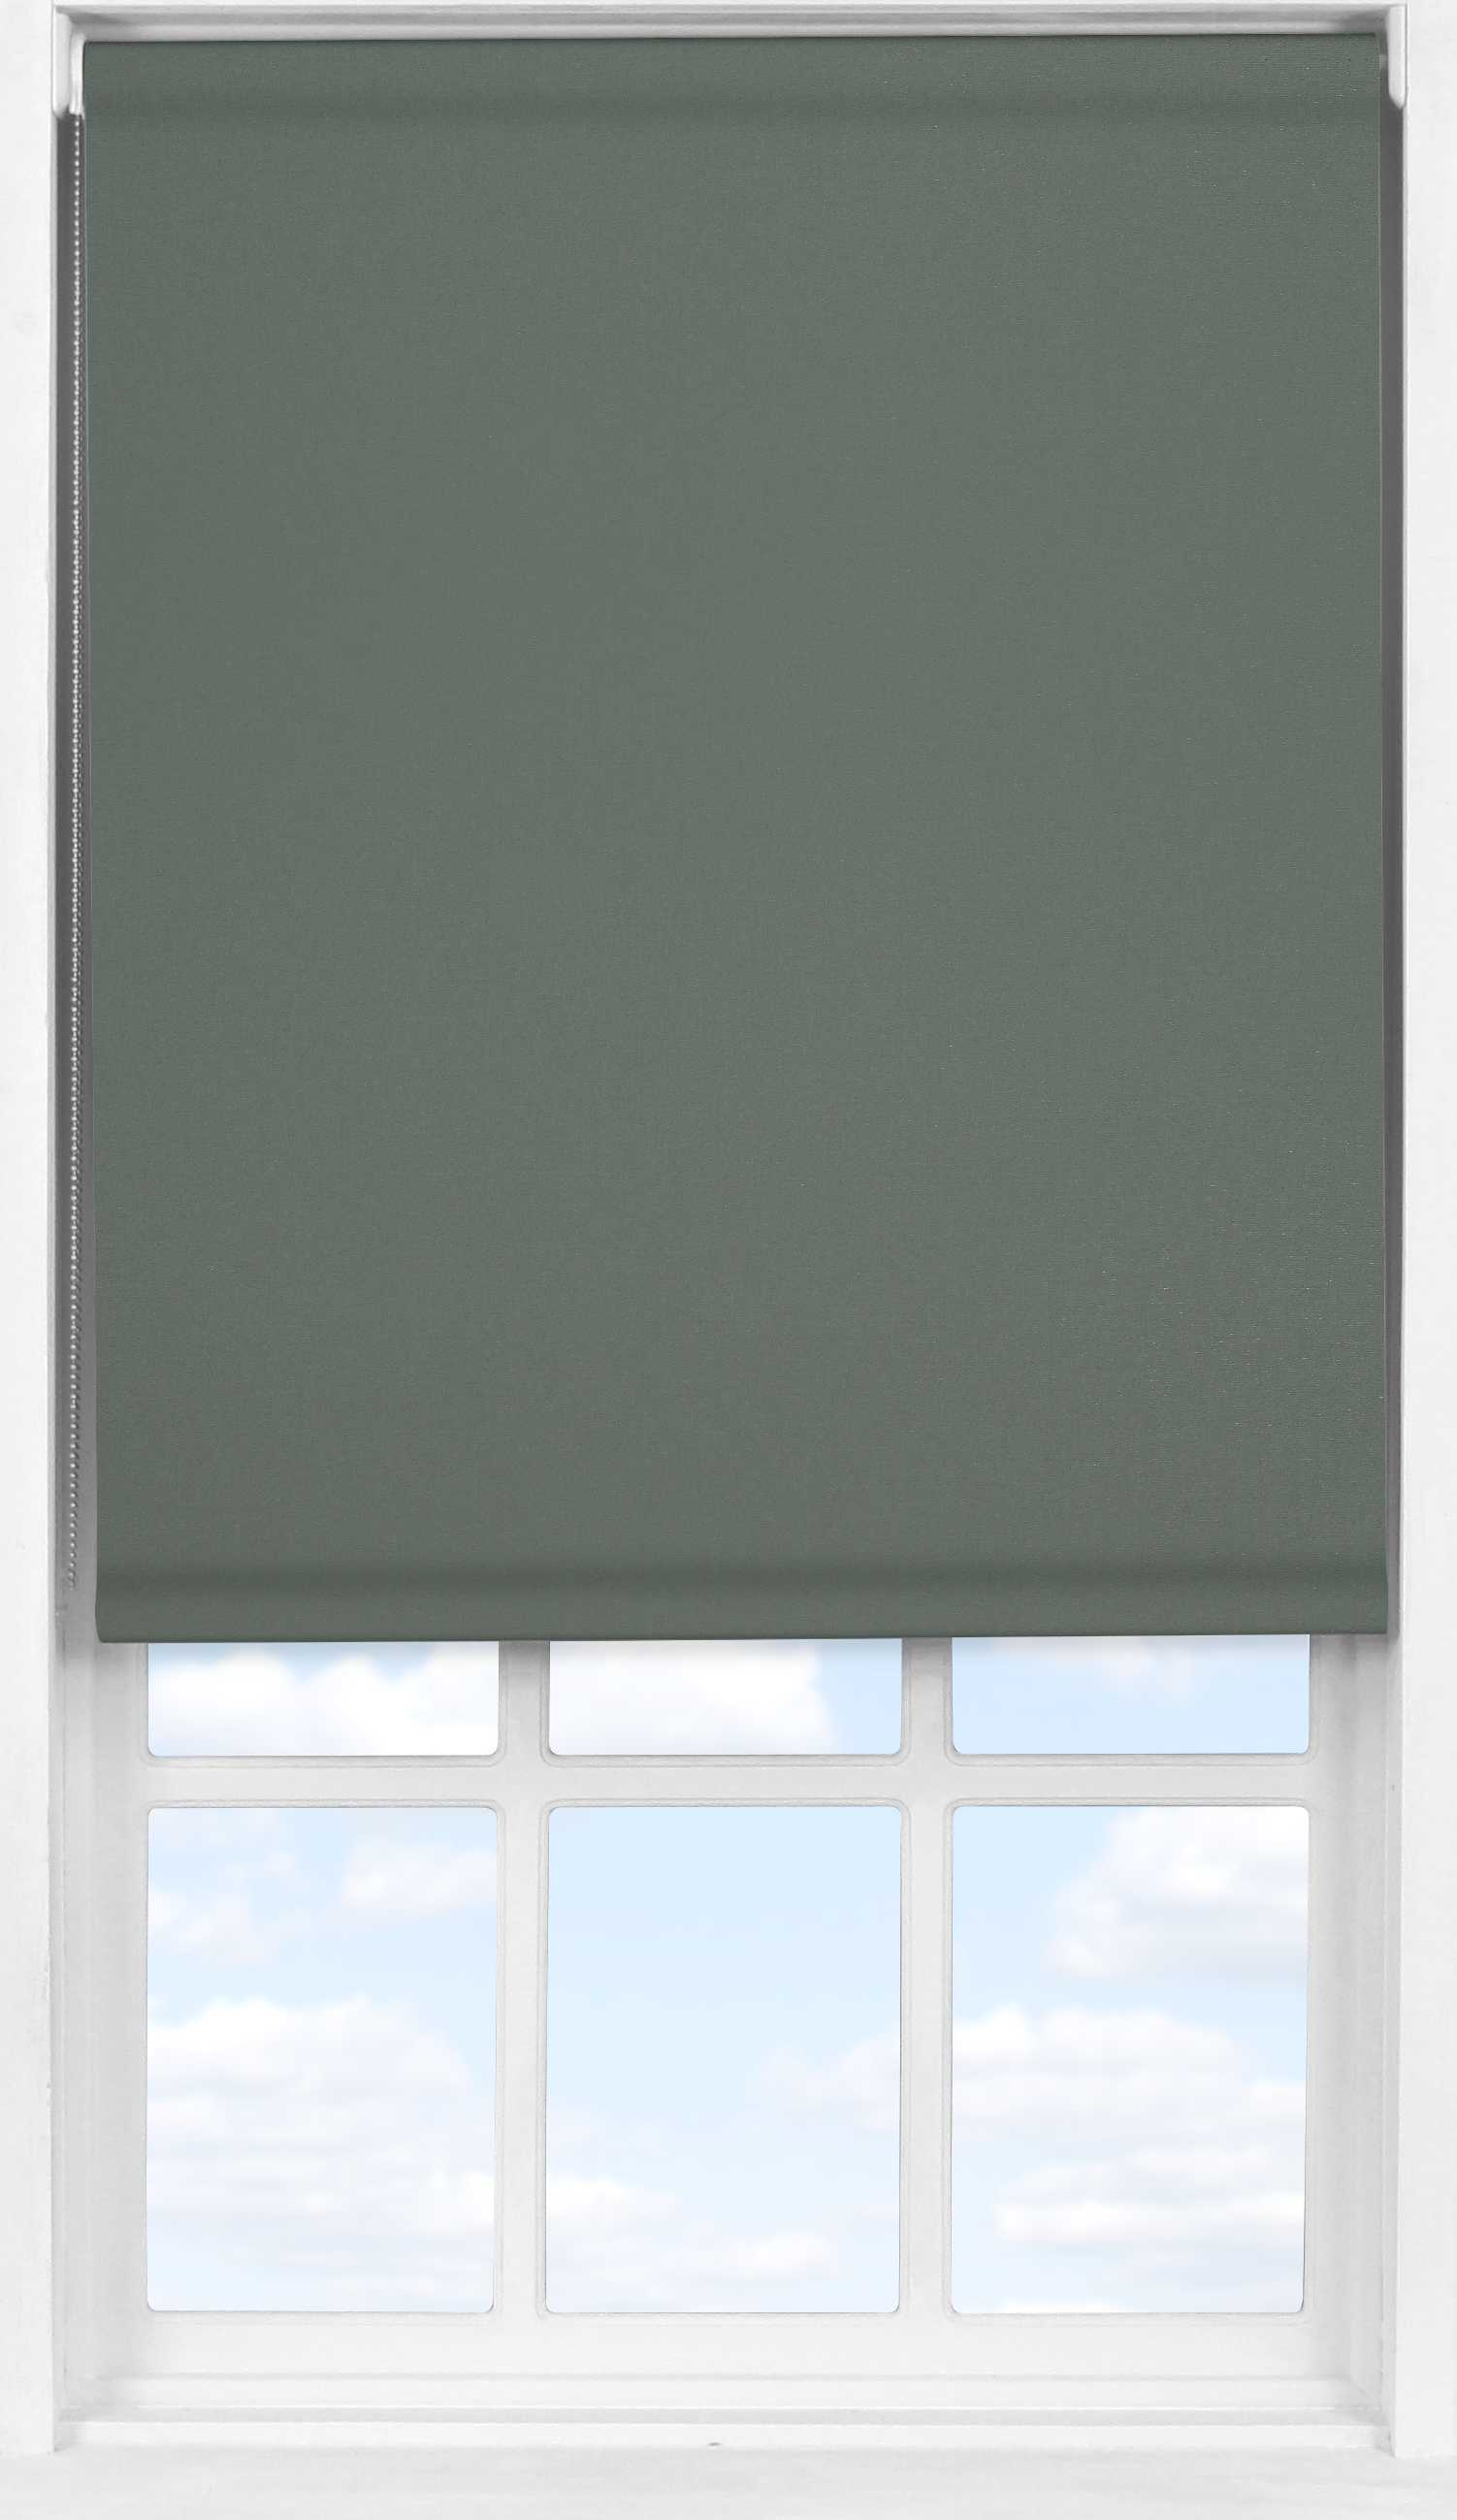 Easifit Roller Blind in Smouldering Charcoal Translucent